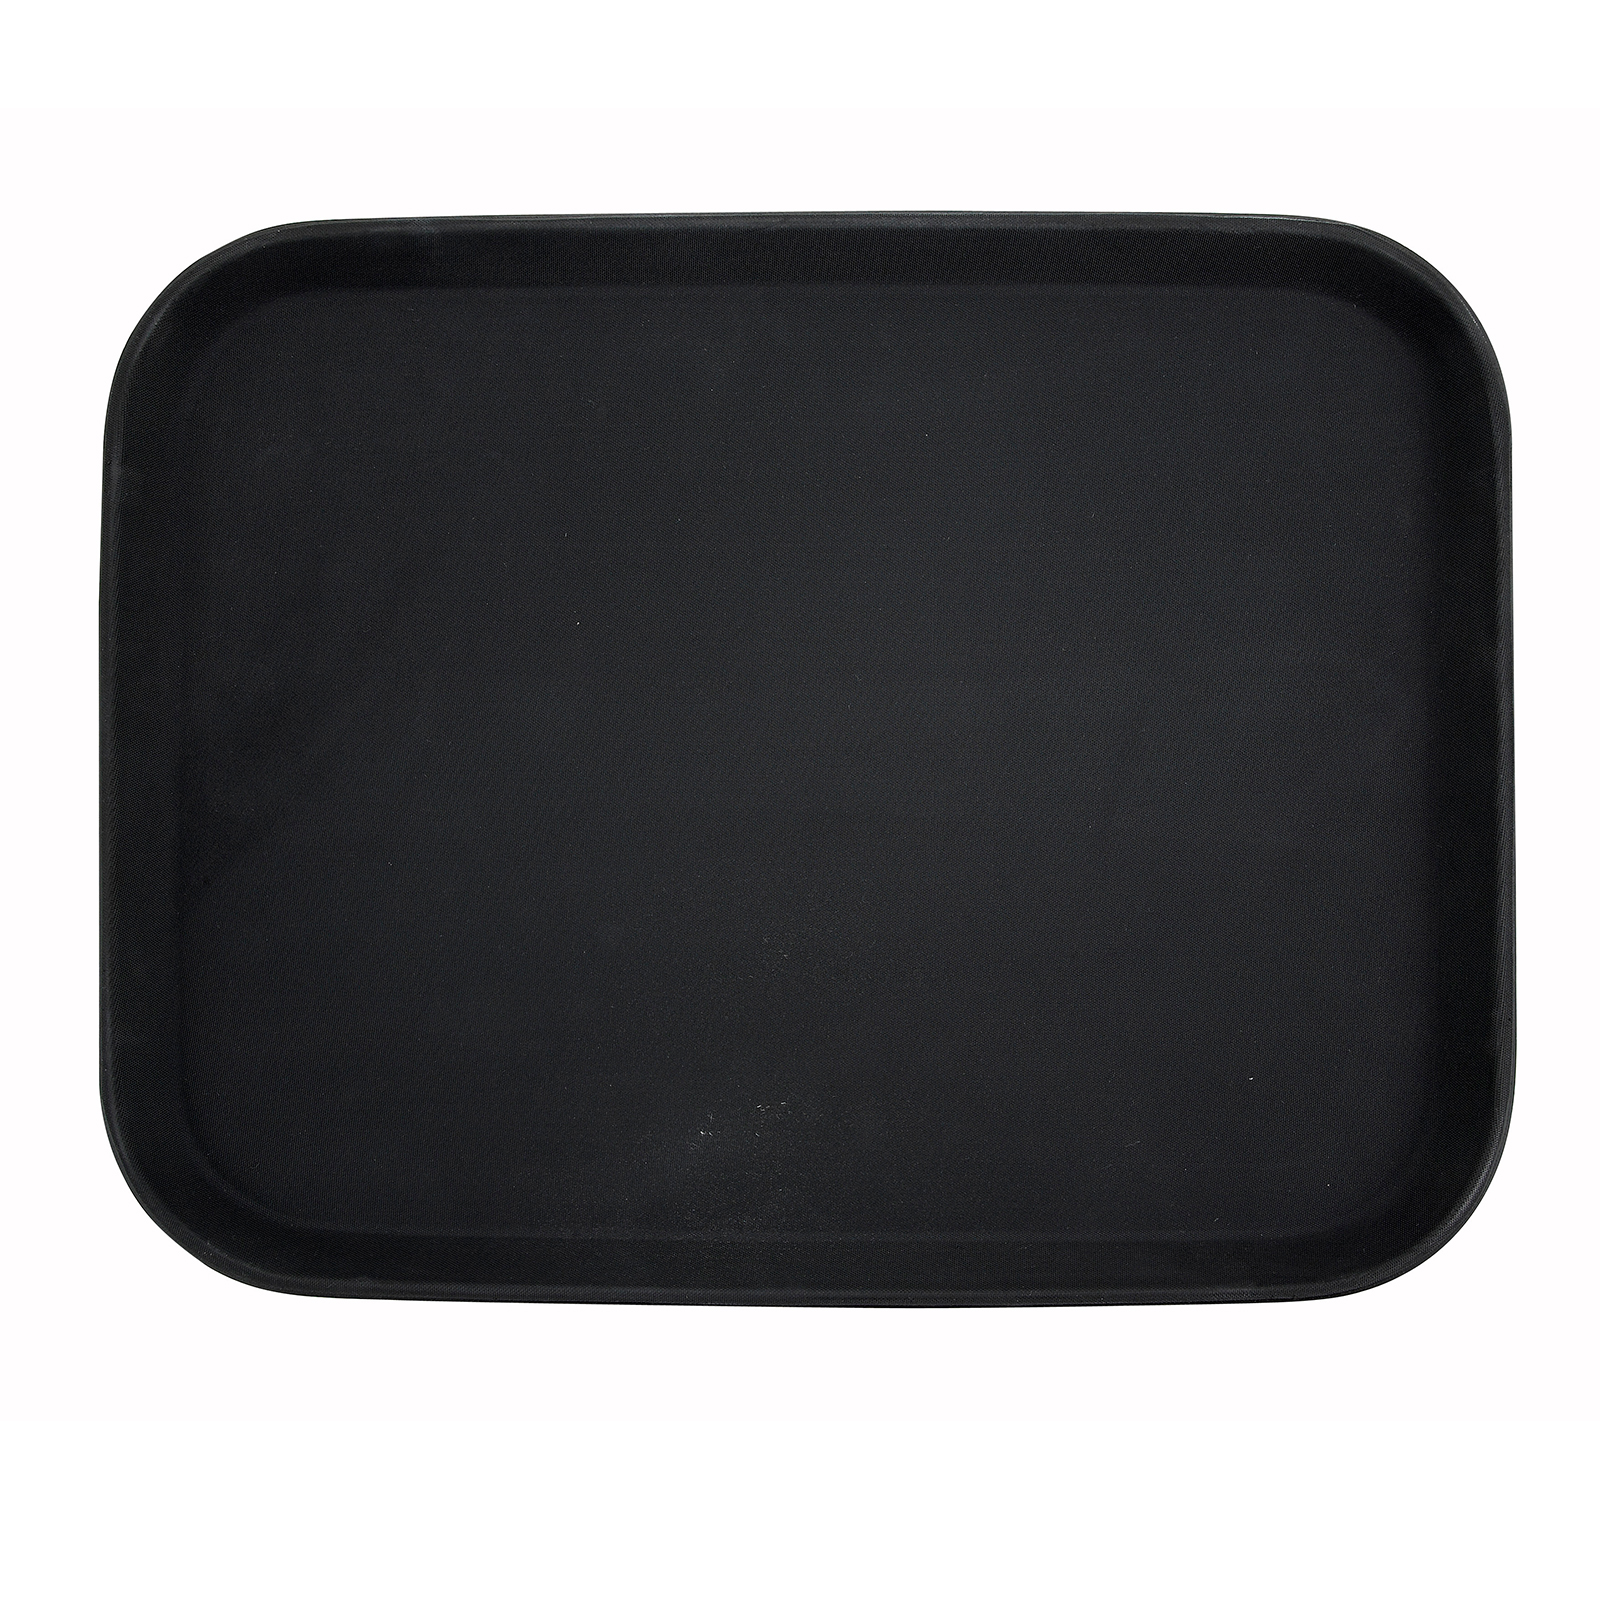 Winco TRH-1418K serving tray, non-skid